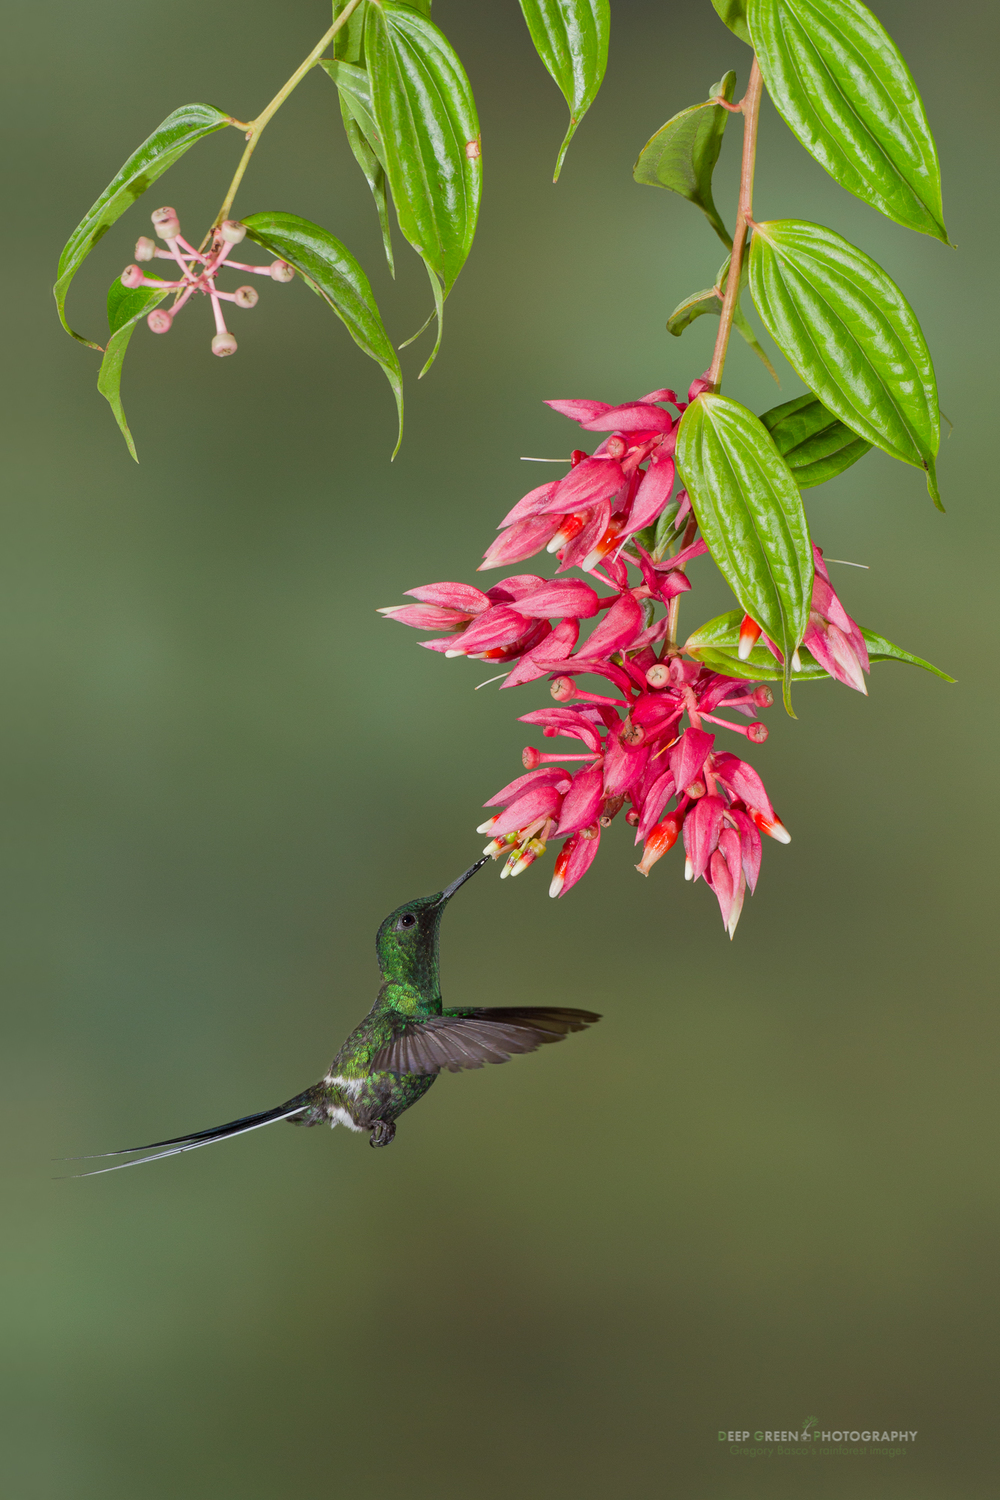 Green thorntail hummingbird pollinating tropical blueberry (Ericaceae family) flowers in a Costa Rican cloud forest